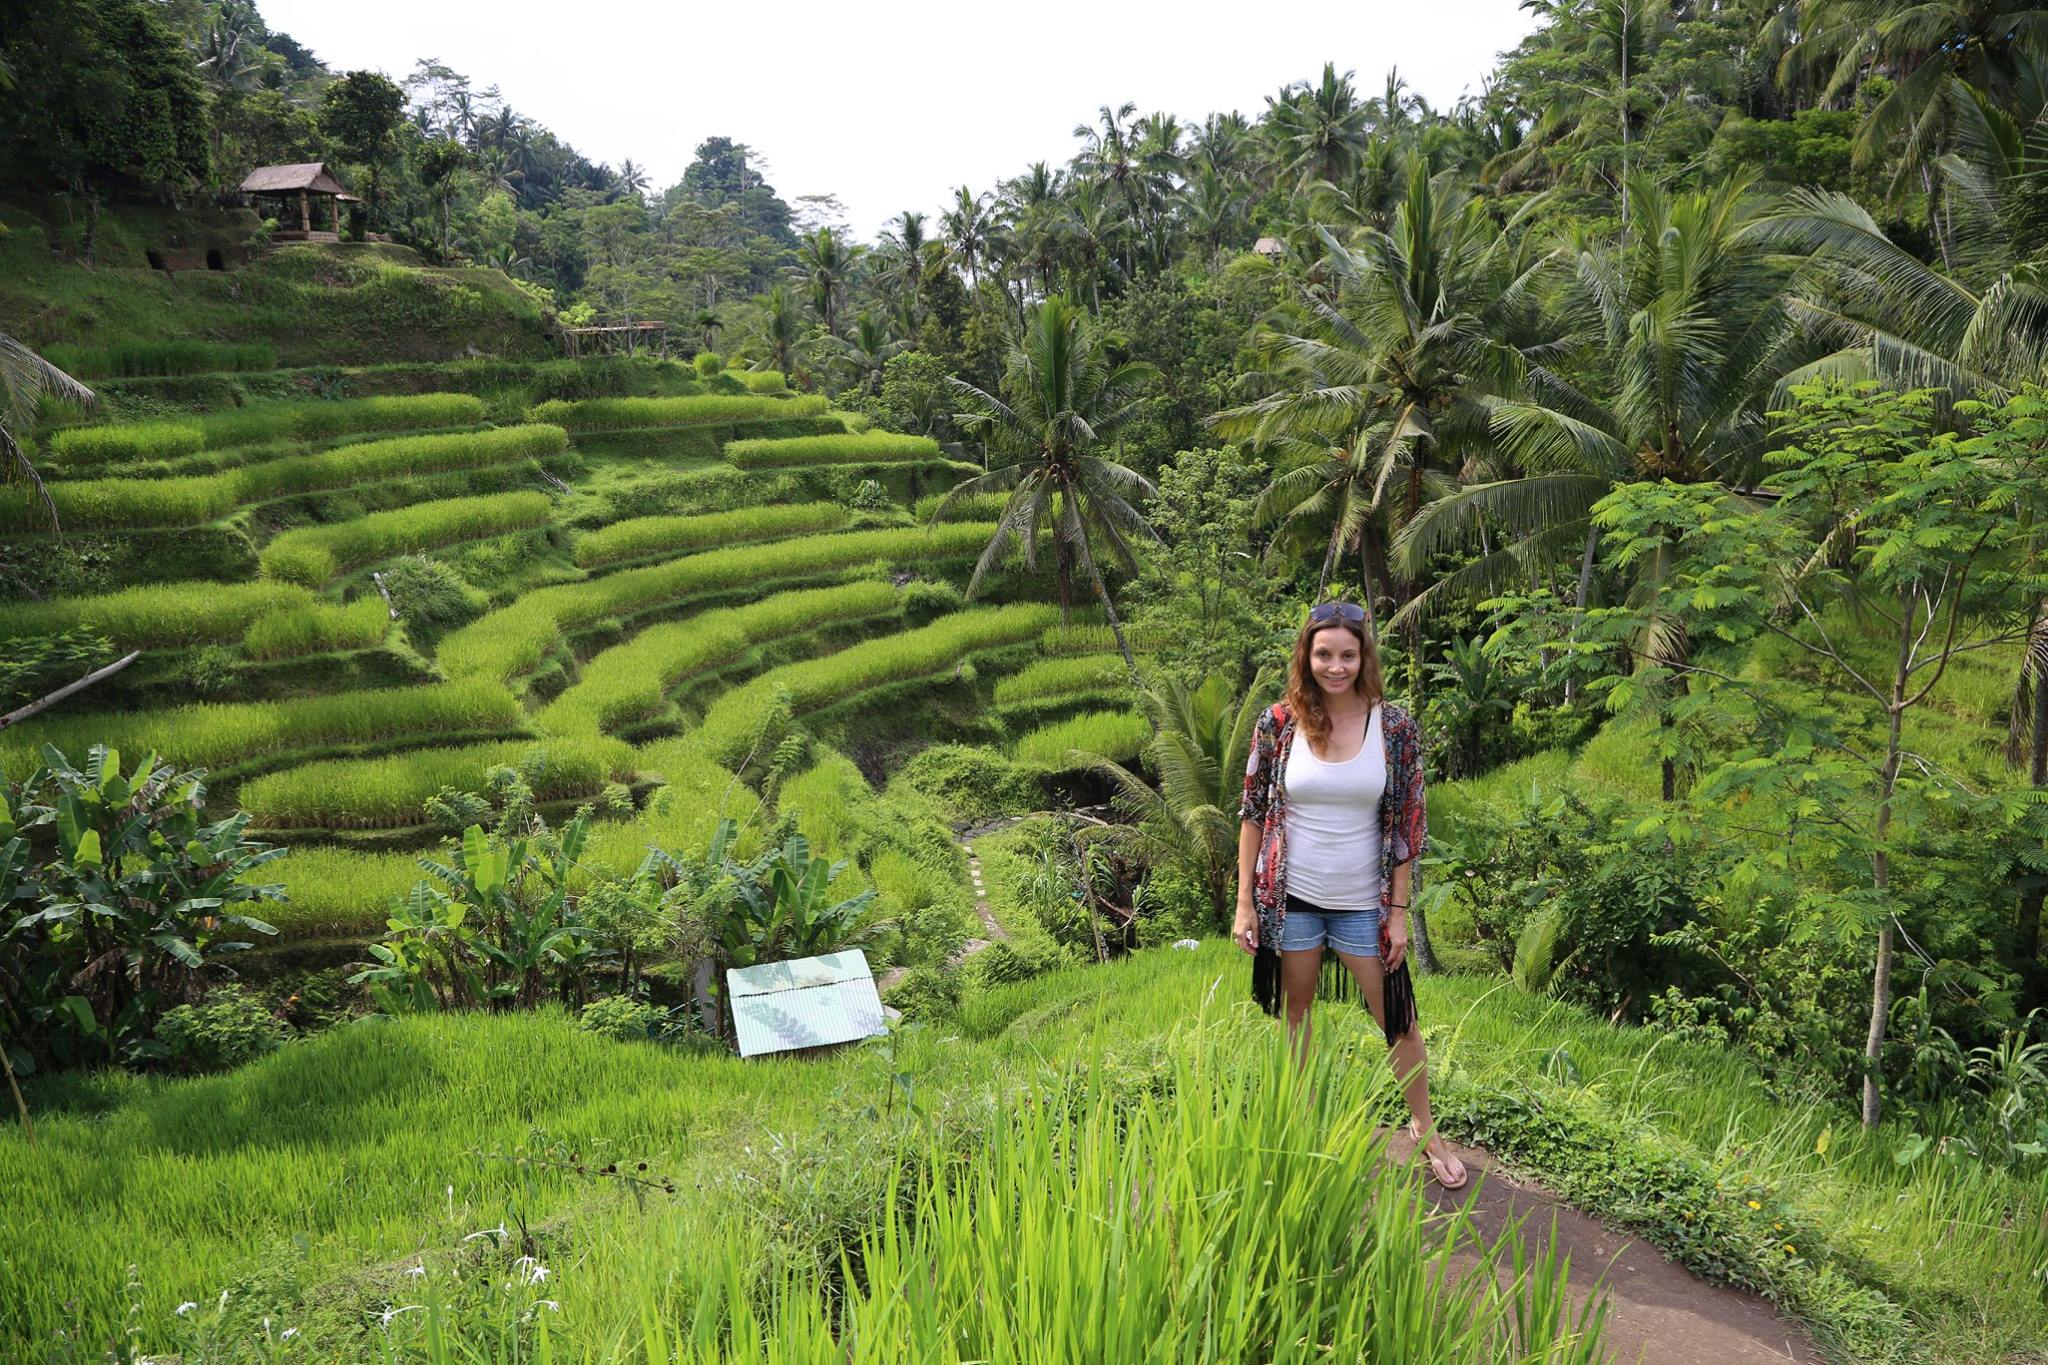 Walk the Rice Terraces in Indonesia